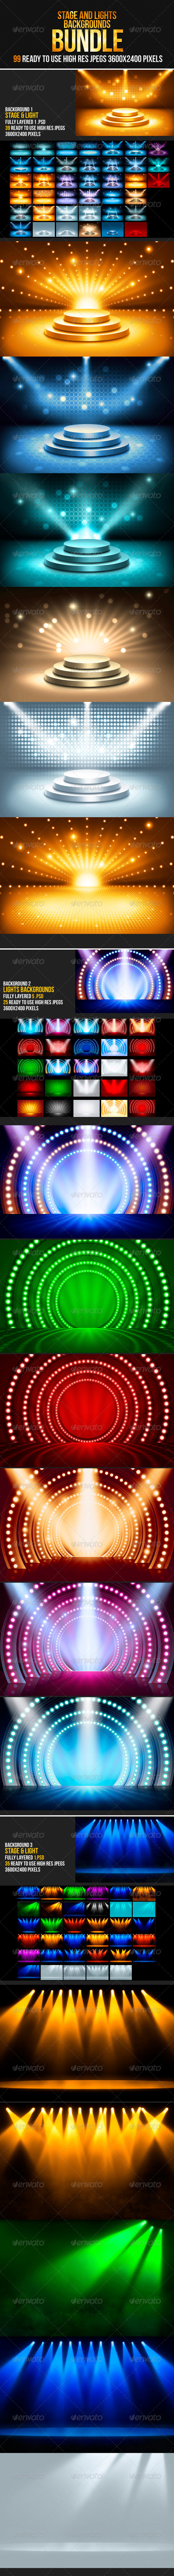 Stage & Lights Backgrounds Bundle - Backgrounds Graphics